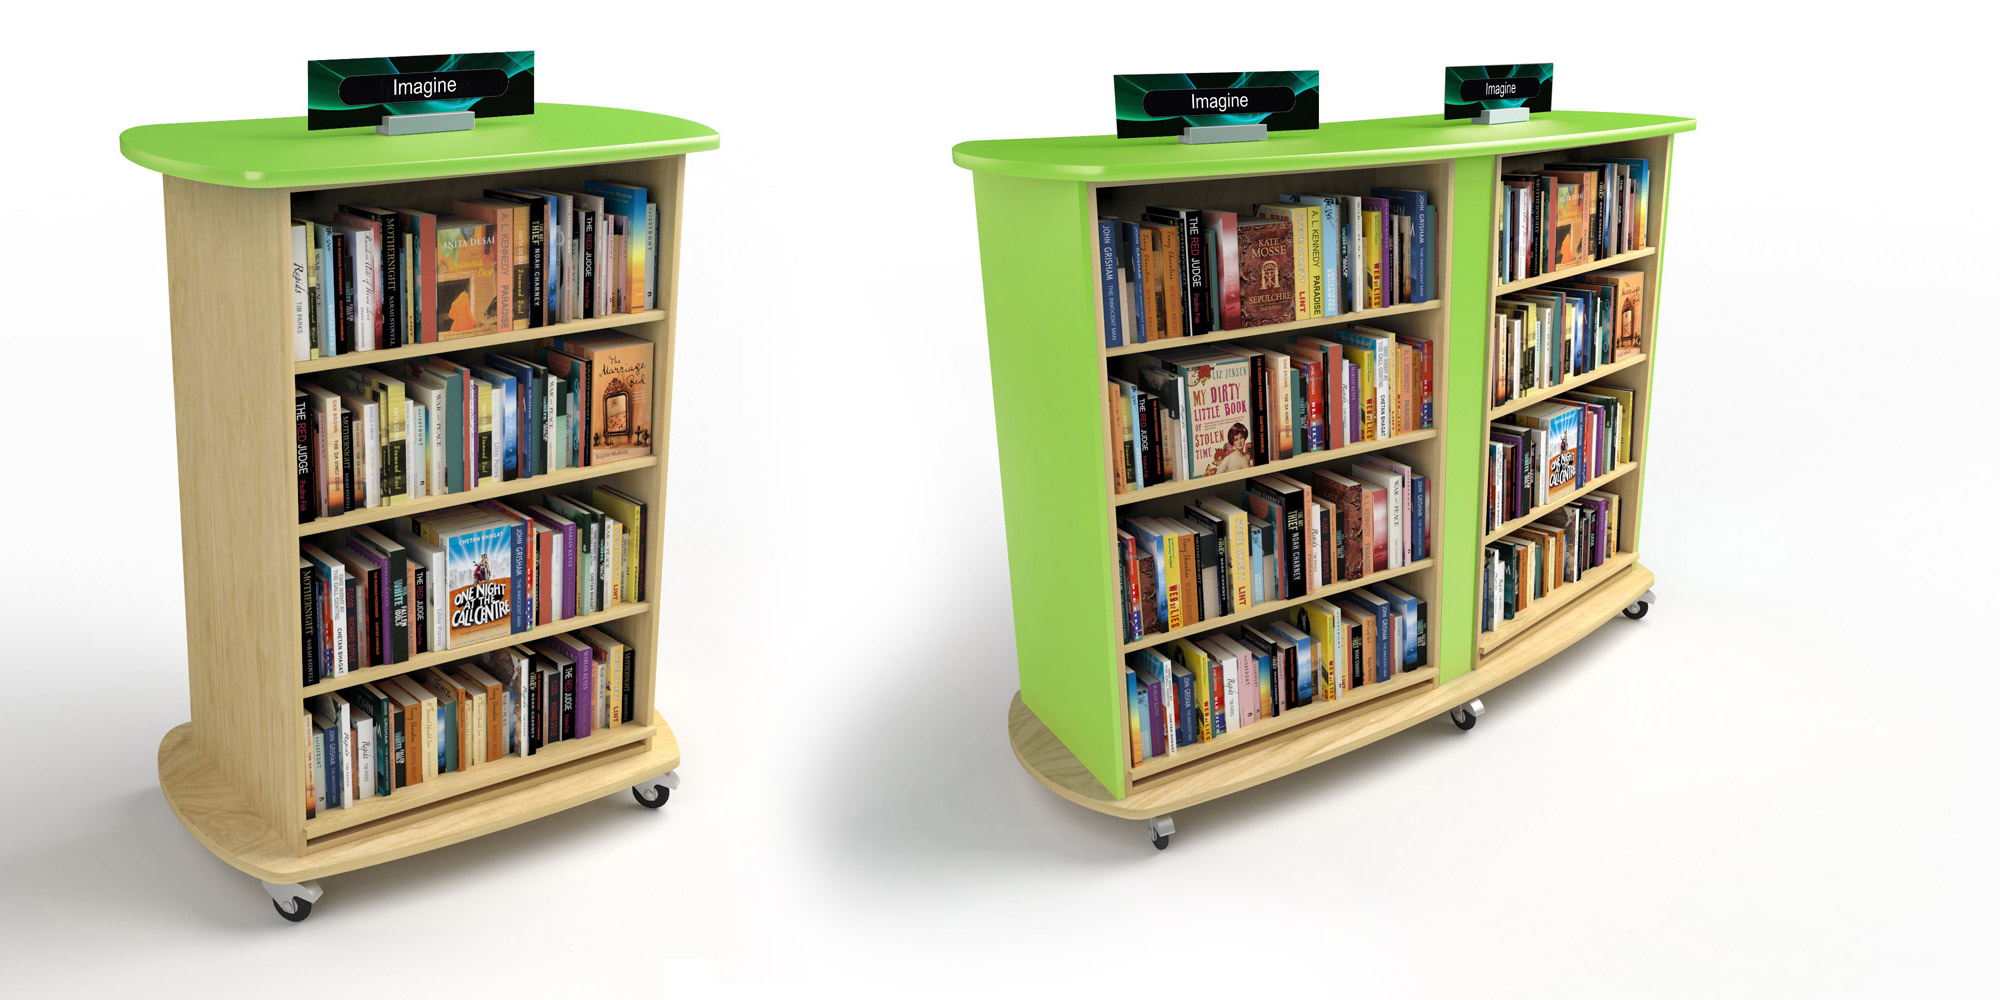 Swell Performance Shelving Opening The Book Canada Interior Design Ideas Gentotryabchikinfo